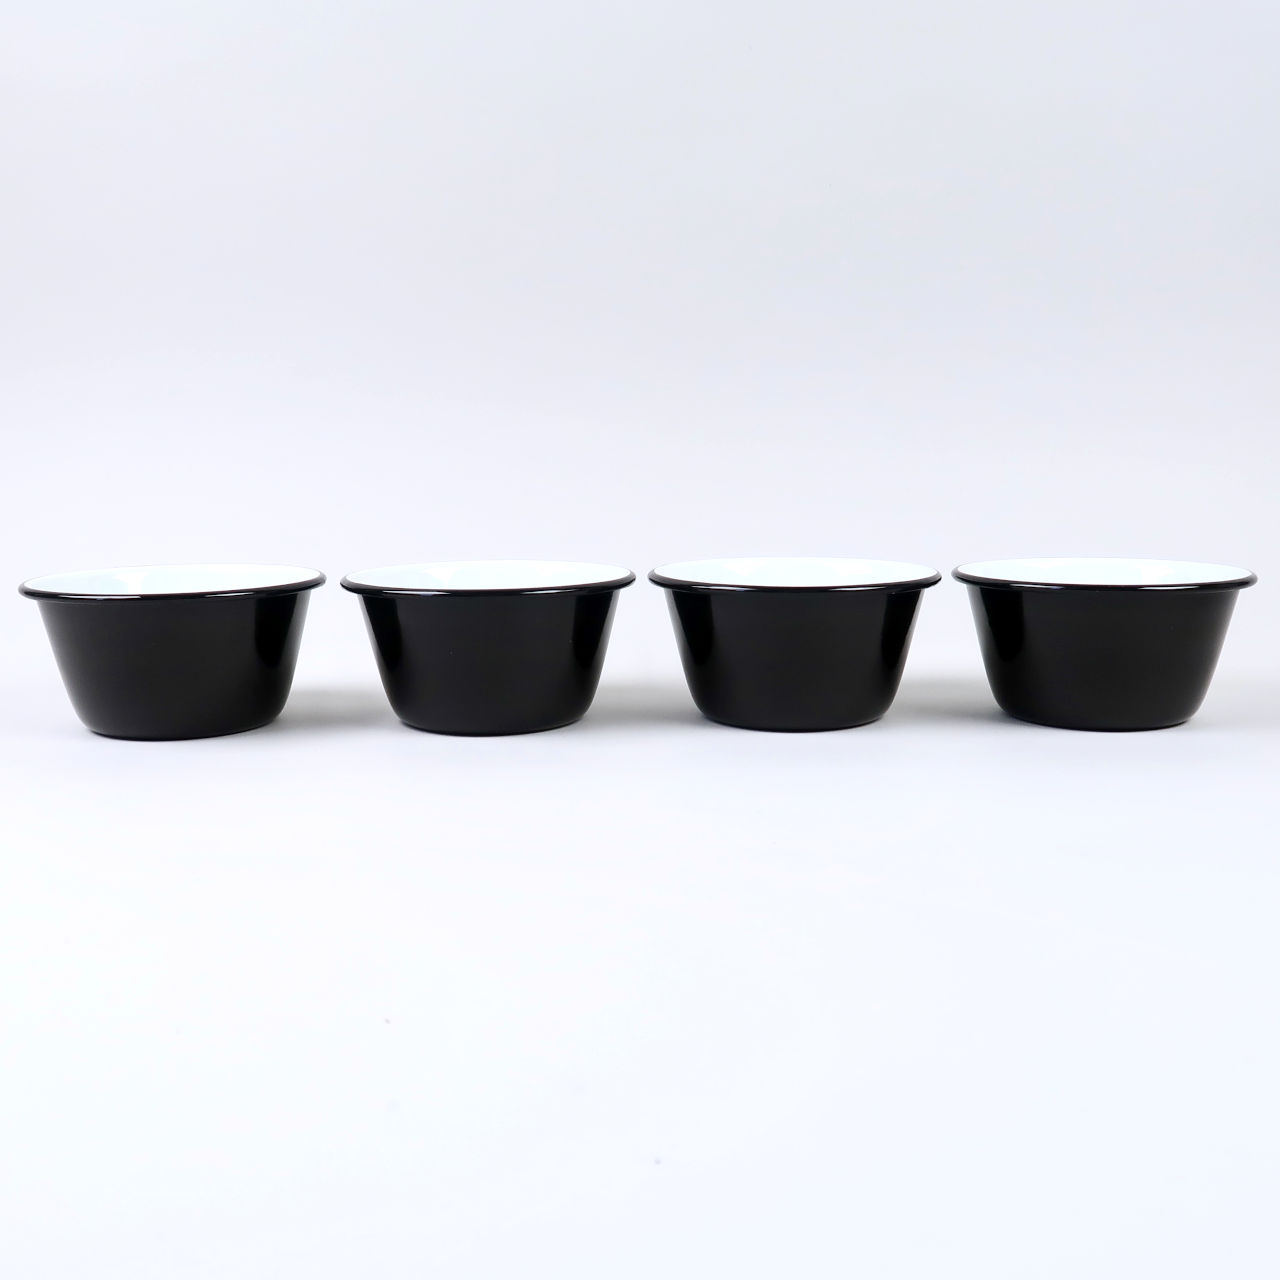 Box of 4 Small Enamel Bowls - Black